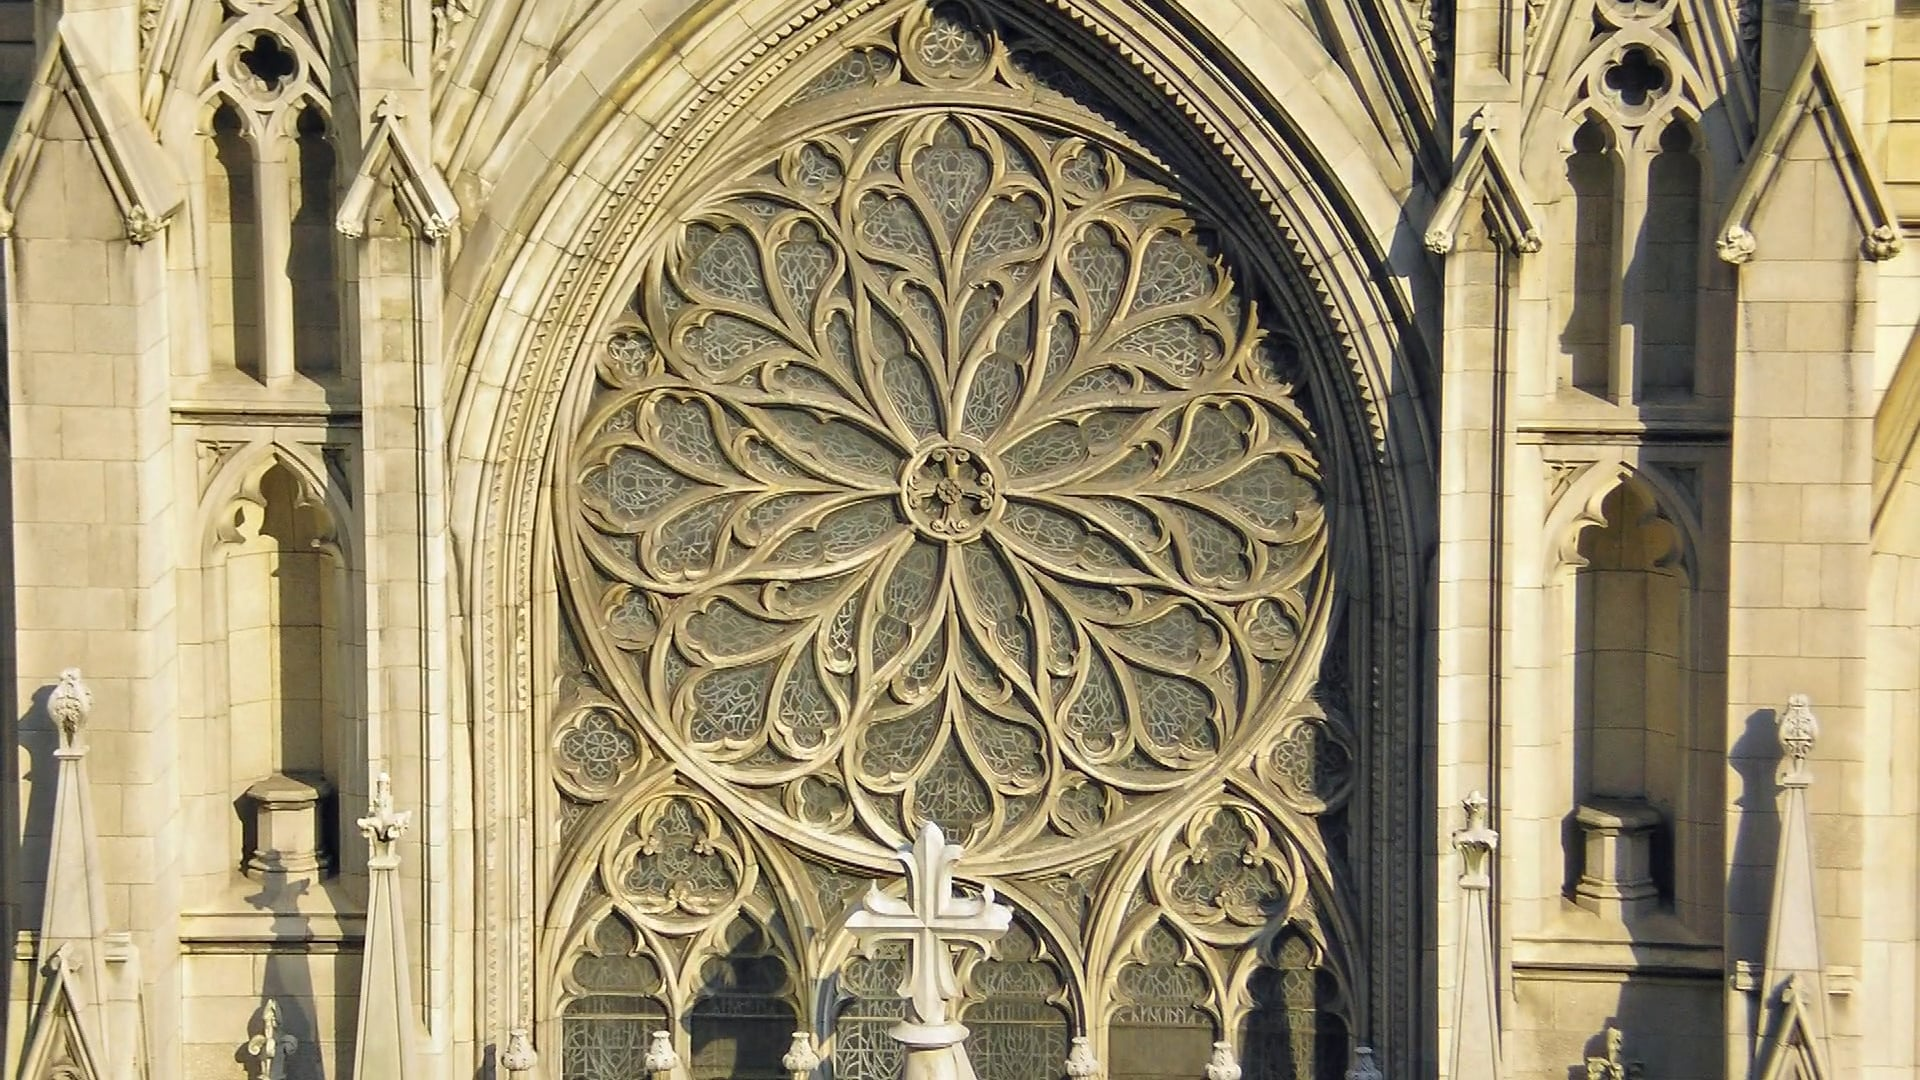 Mass from St. Patrick's Cathedral - October 22, 2021